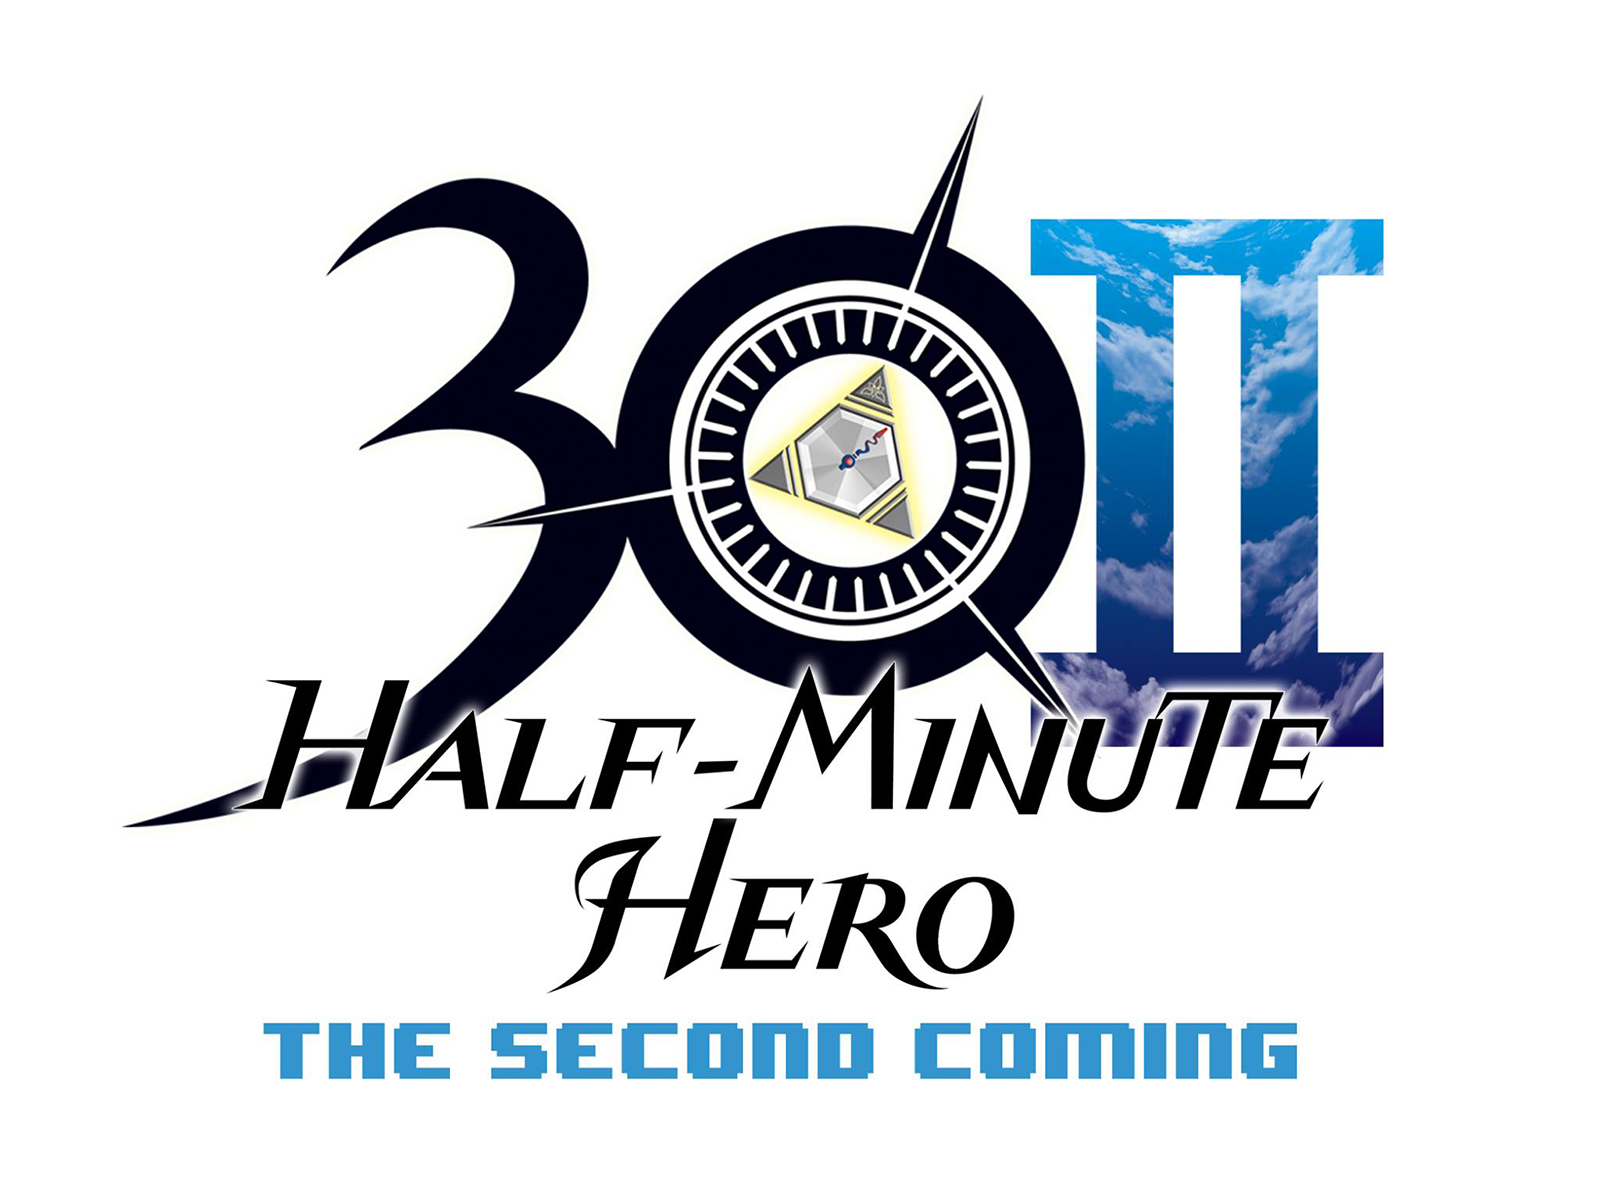 half-minute-hero-the-second-coming-logo-jpg